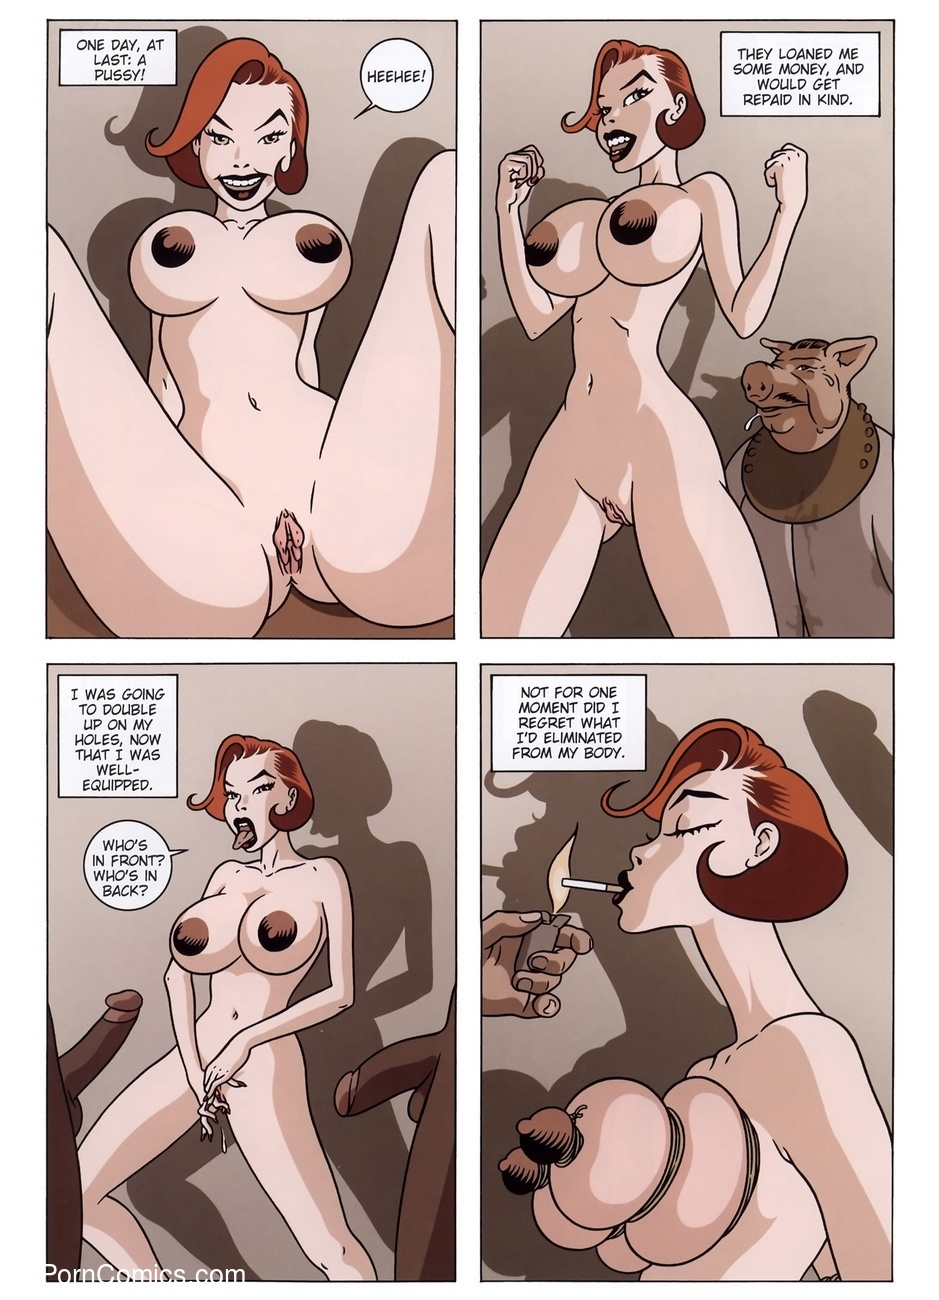 The 110 Blowjobs 10 free sex comic